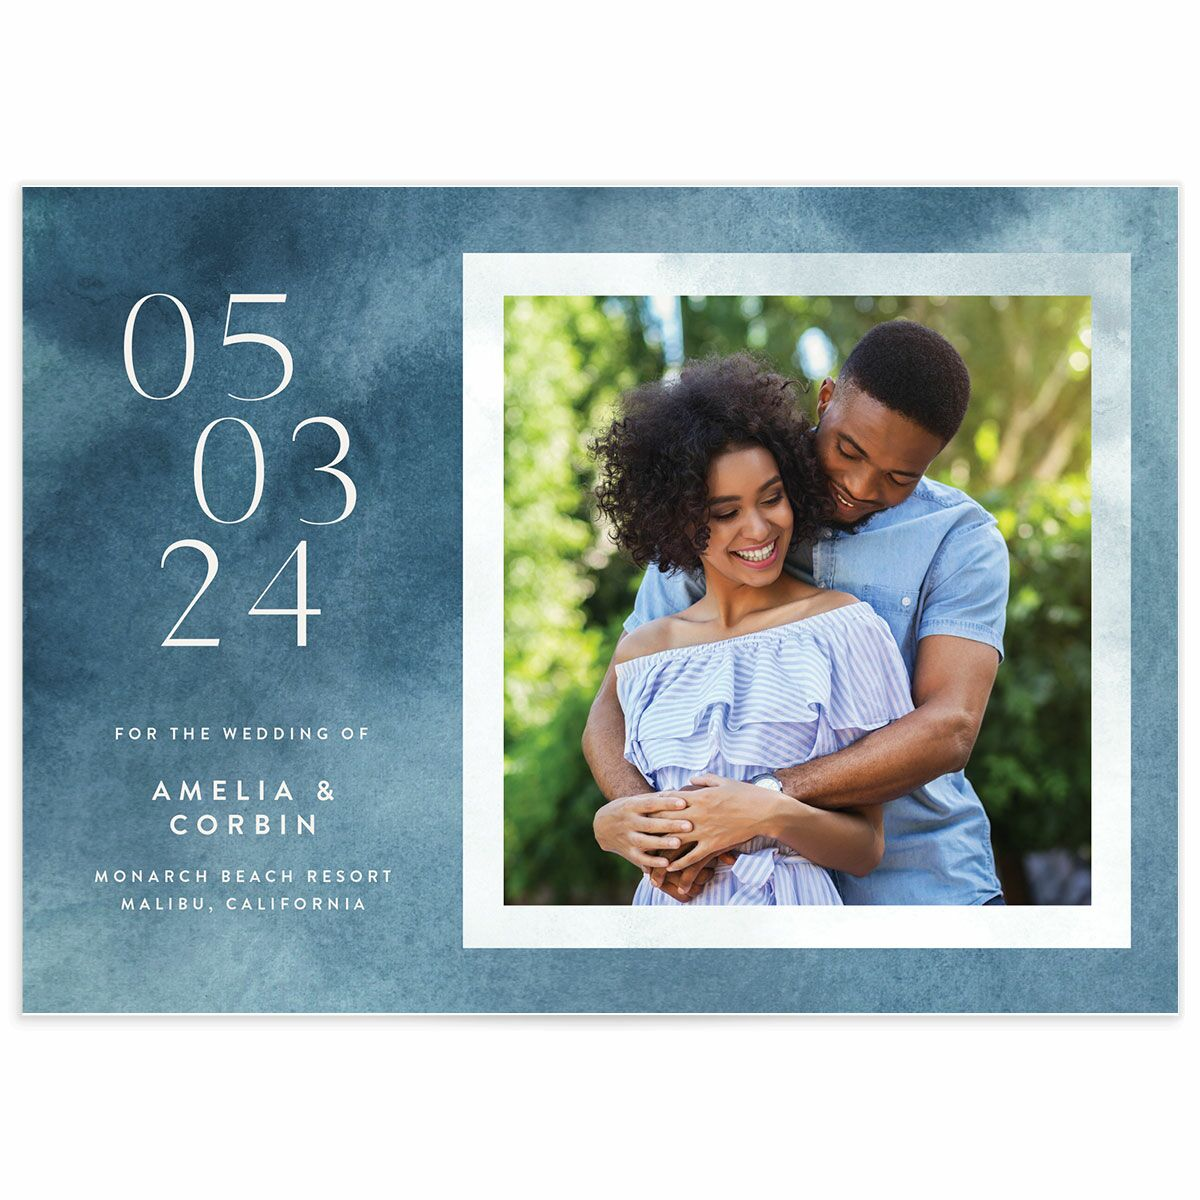 A Save the Date from the Elegant Ethereal Collection